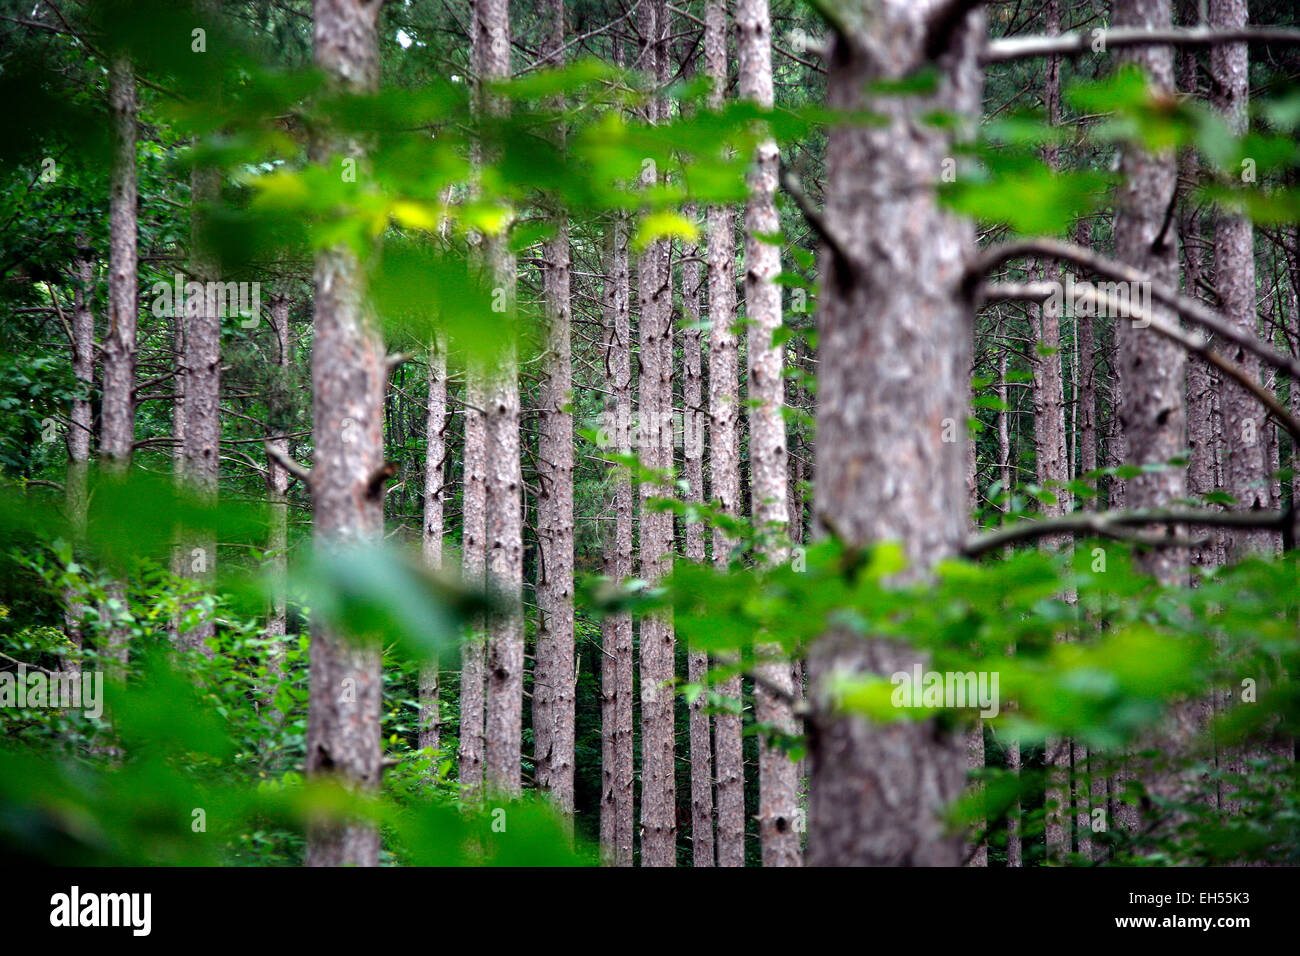 Pine situated in the Arcadia Dunes/C.S. Mott Nature Preserve along the Baldy Trail in northwest Michigan. - Stock Image